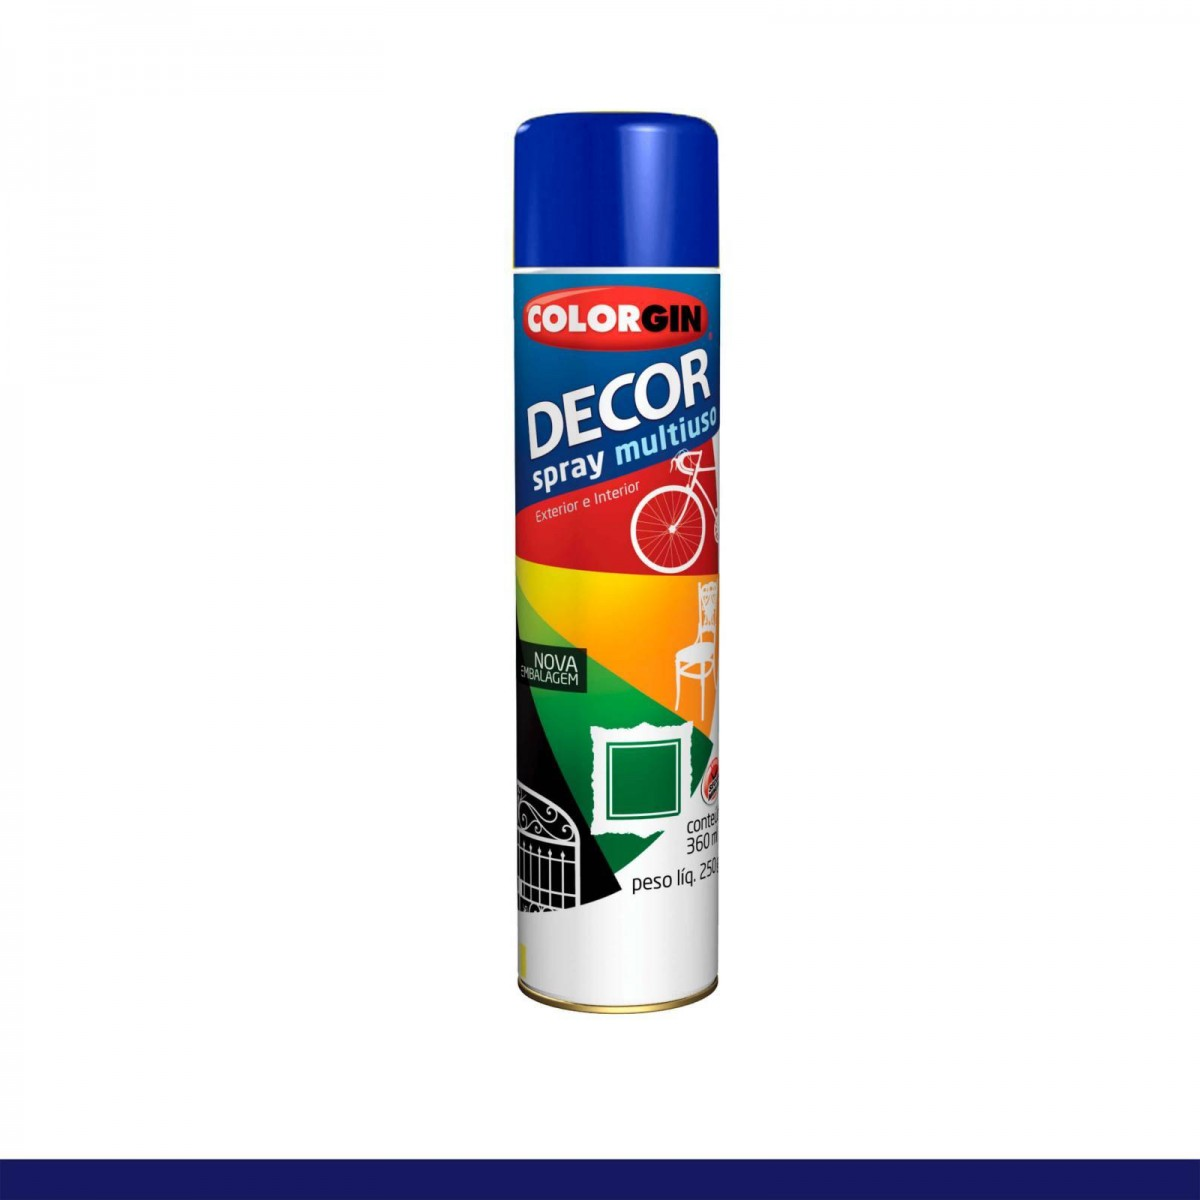 Foto 1 - Tinta Spray Uso Geral Decor Colorgin 360ml - Cores